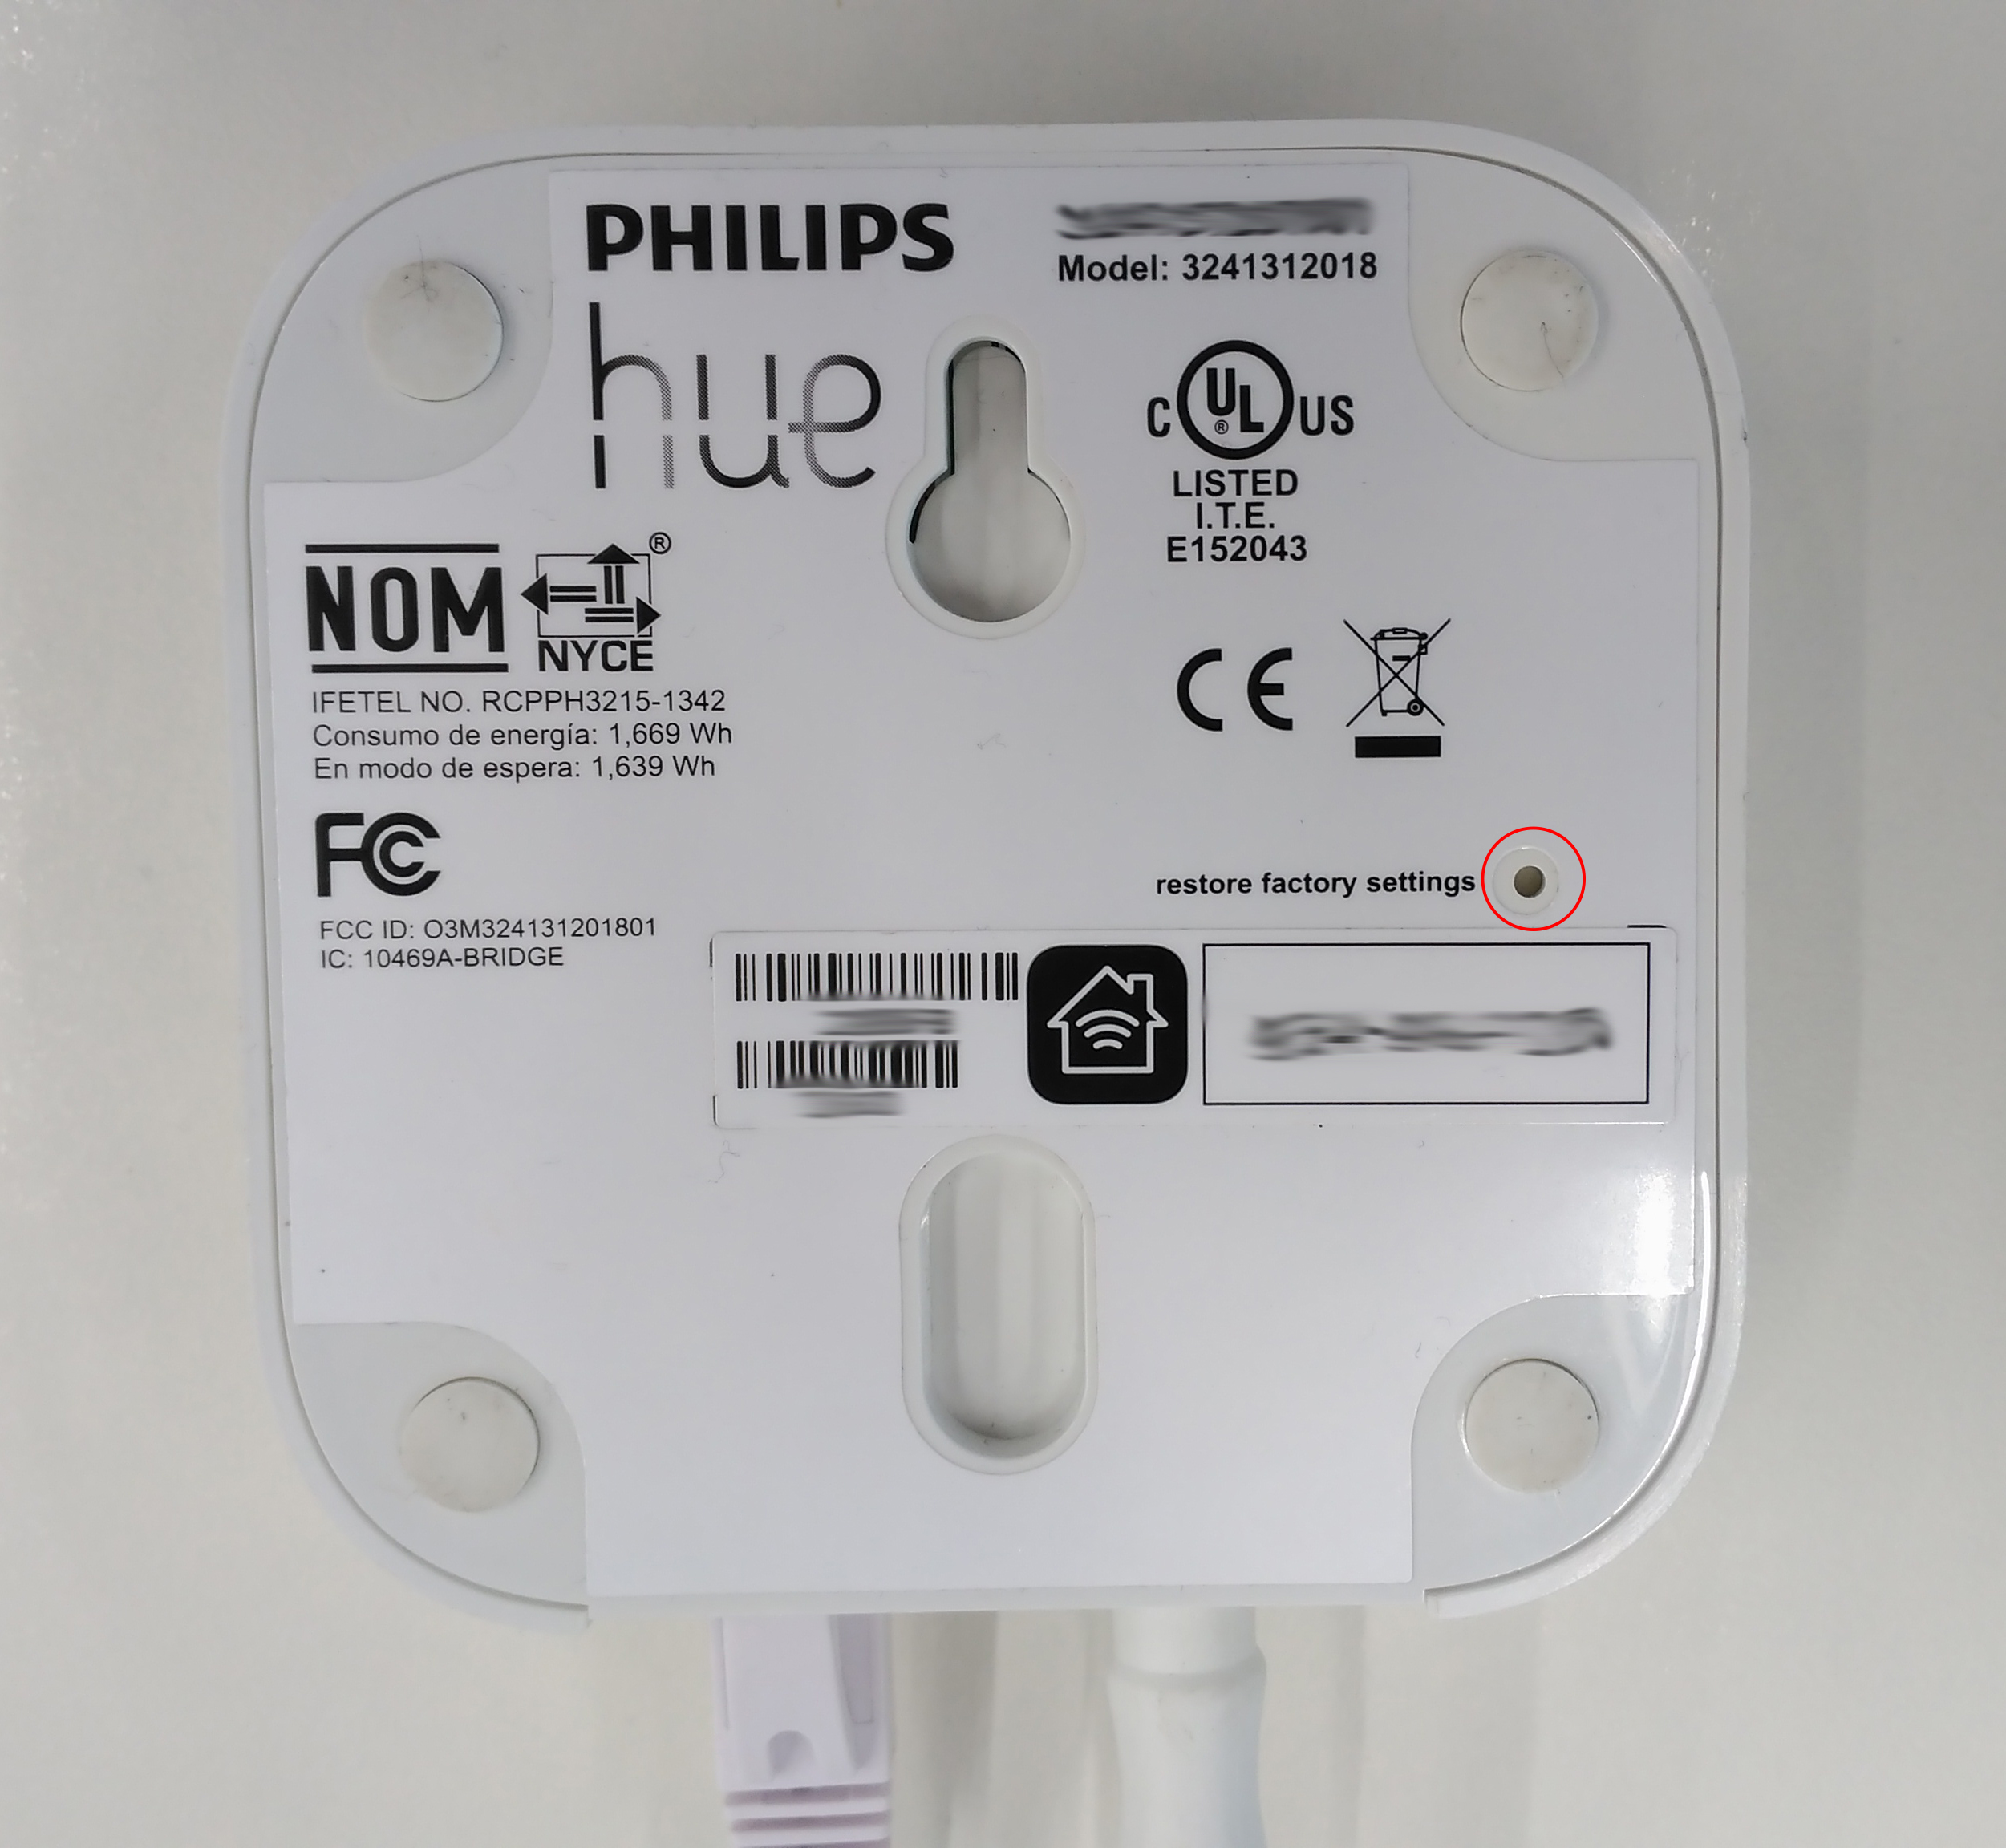 The Most Common Problems And Issues With Your Philips Hue Yeti Blog Wiring A Light Loop Do I Need Internet Connection To Control My Lights